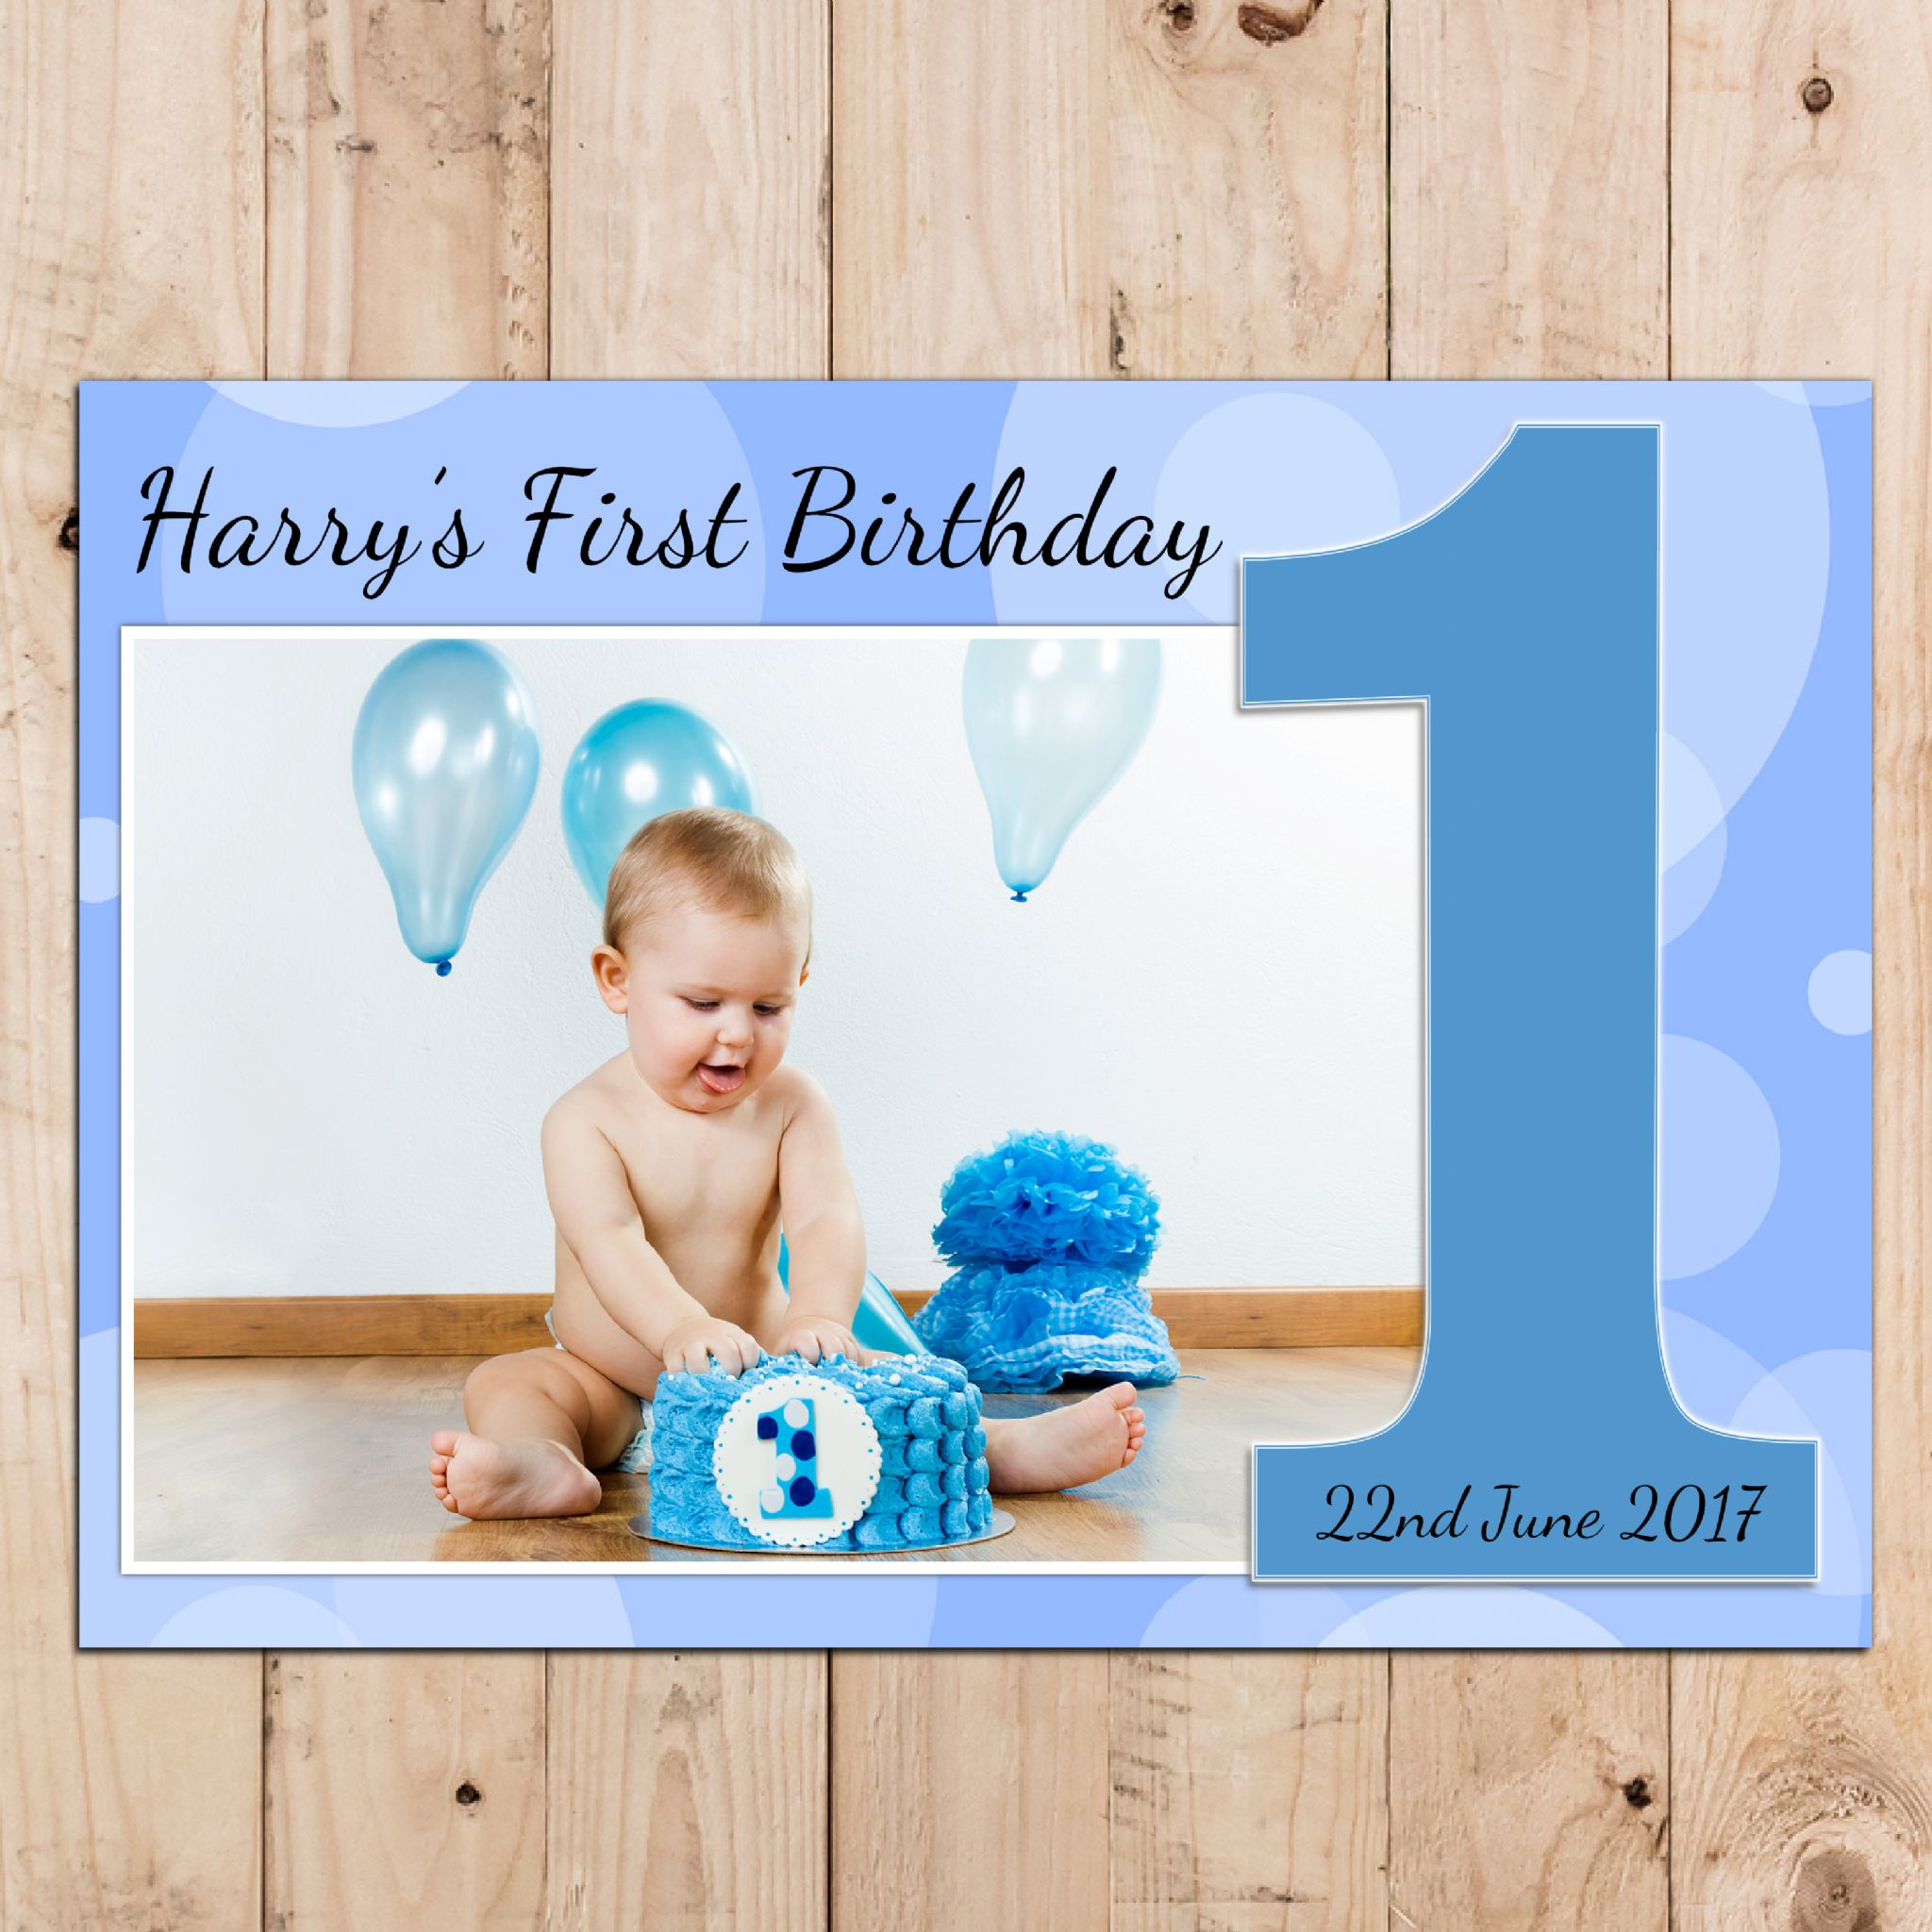 personalized birthday banners for 1st birthday ; personalised-boys-1st-first-happy-birthday-party-photo-banner-poster-n75-14678-p